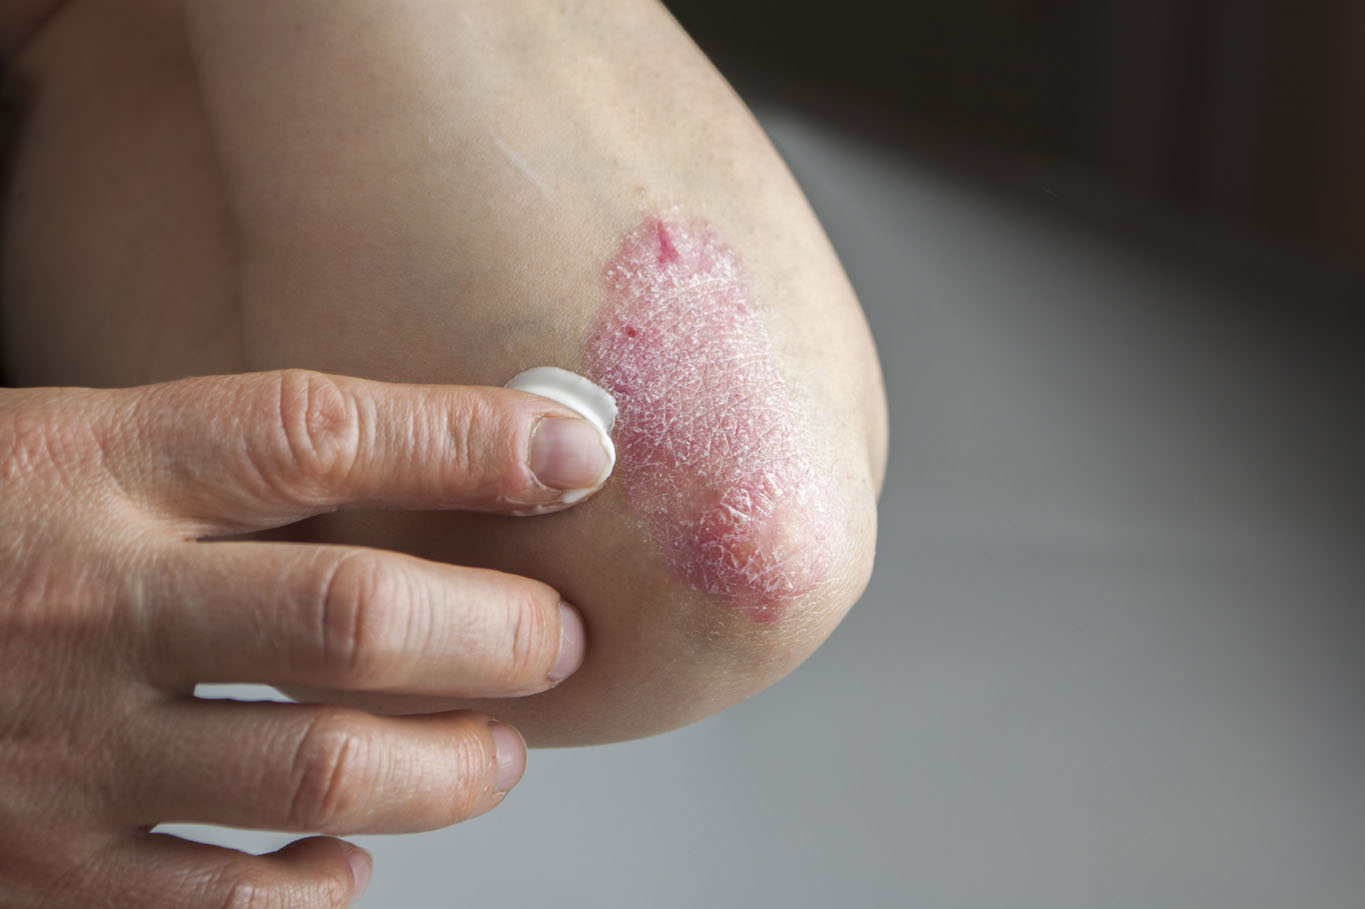 Close up of a person rubbing cream into psoriasis on their elbow